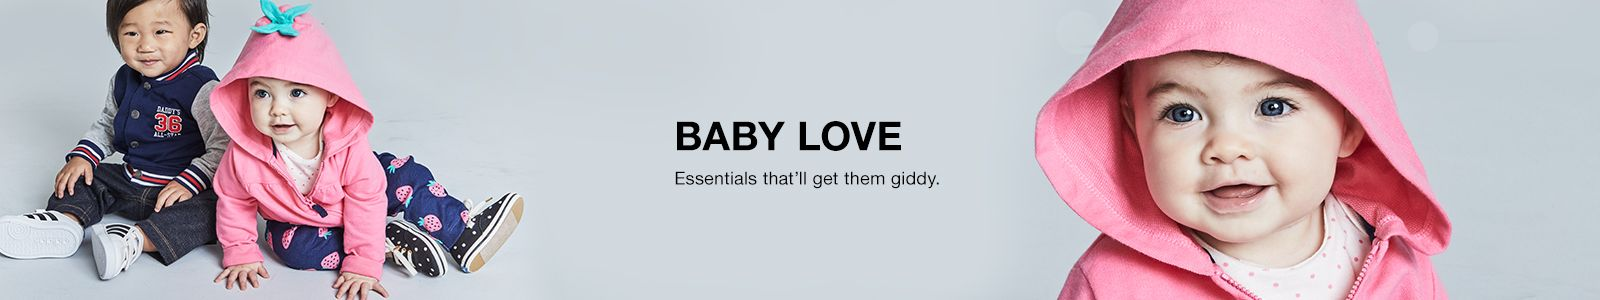 Baby Love, Essentials that'll get them giddy